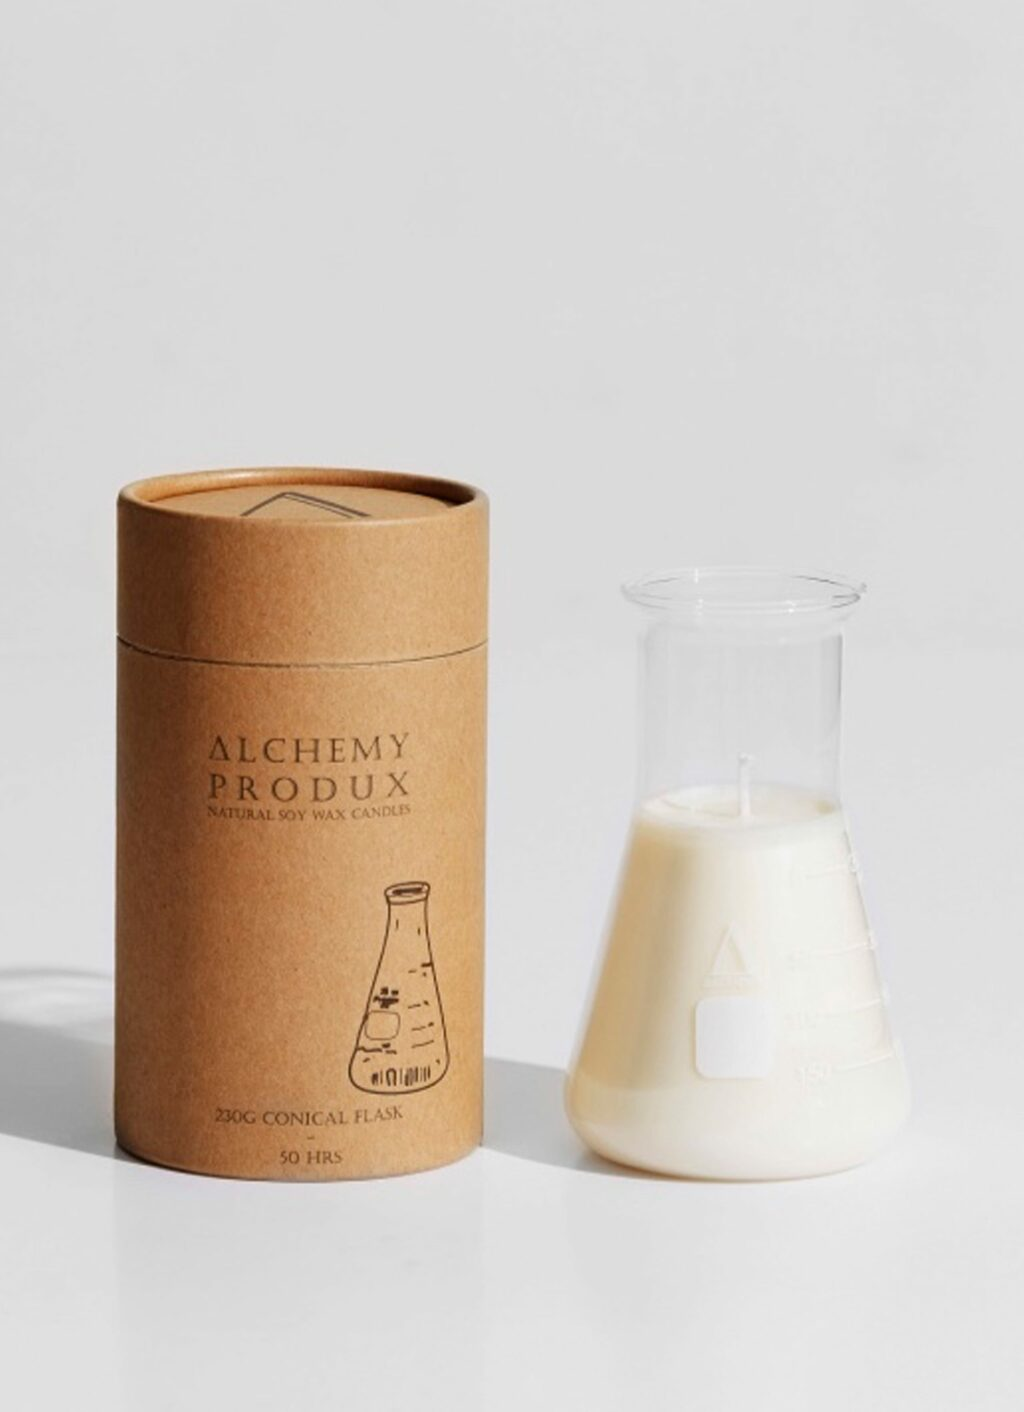 Alchemy Produx - Natural Soy Wax - Conical Flask Candle - Tobacco and Fir